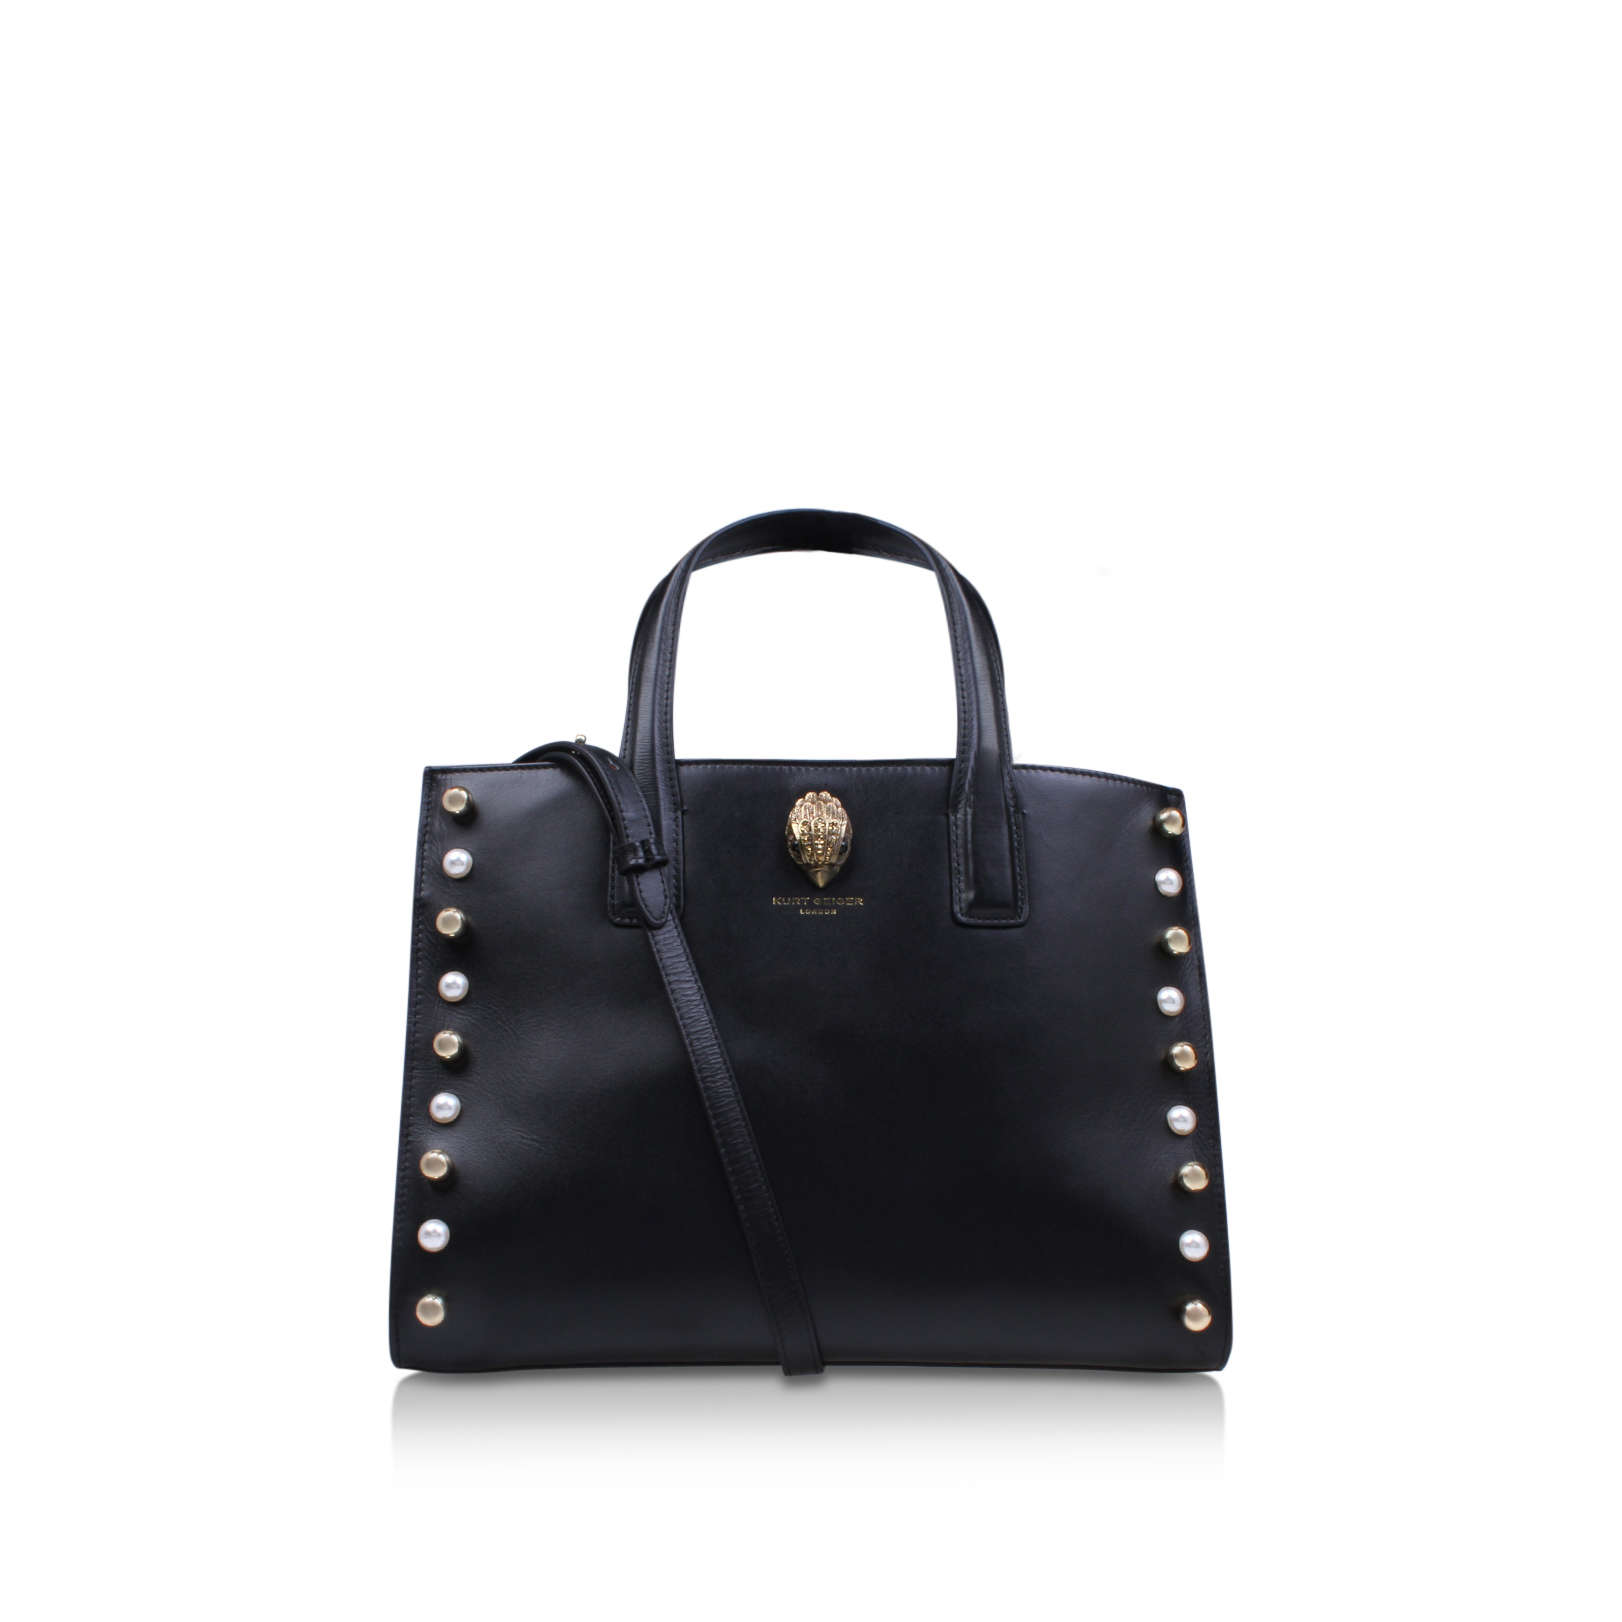 LEATHER LONDON TOTE